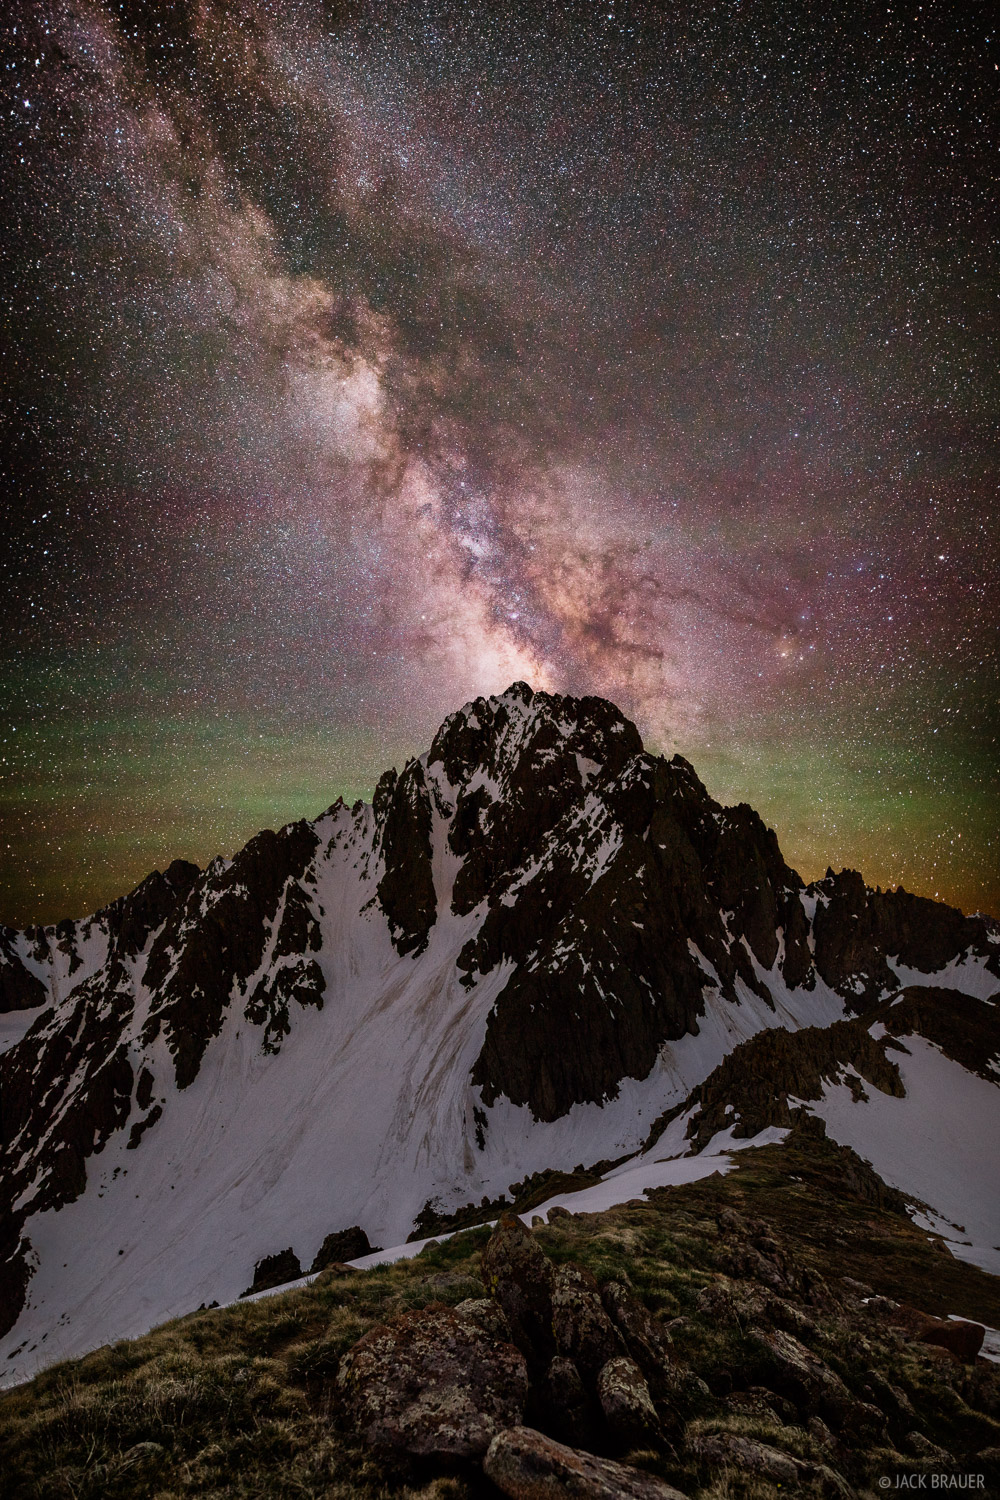 Colorado,Mt. Sneffels,San Juan Mountains,Sneffels Range,stars, Milky Way, galaxy, airglow, photo